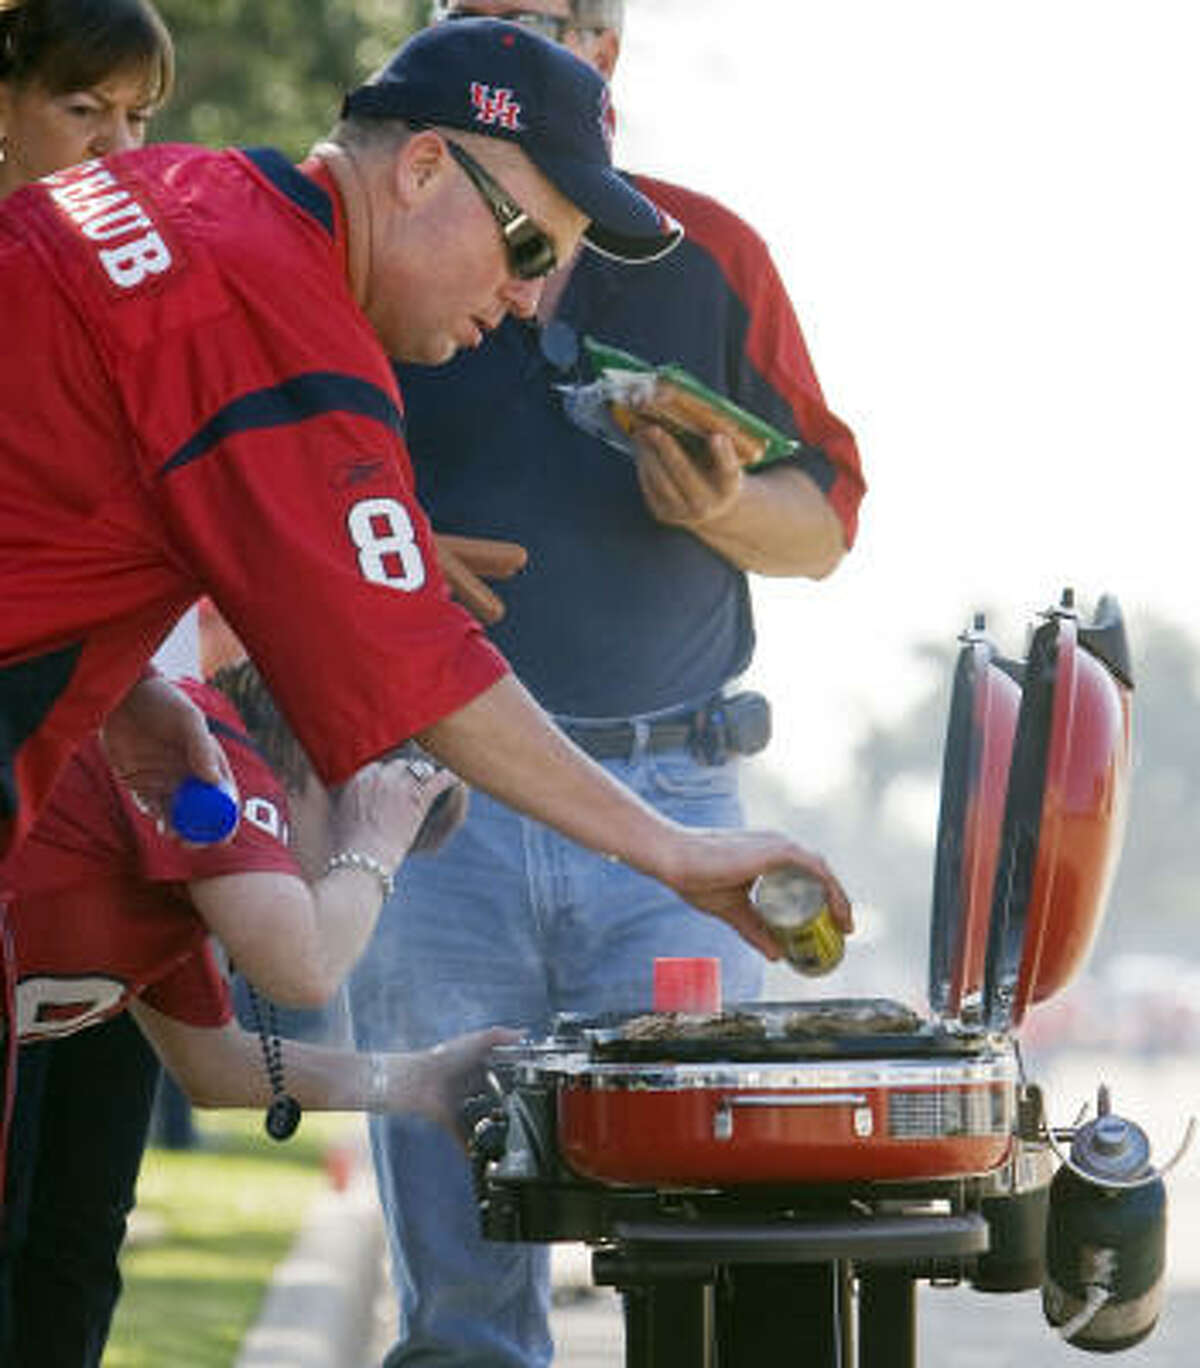 Rodney Crouch of Seabrook mans the grill before the game against Jacksonville.